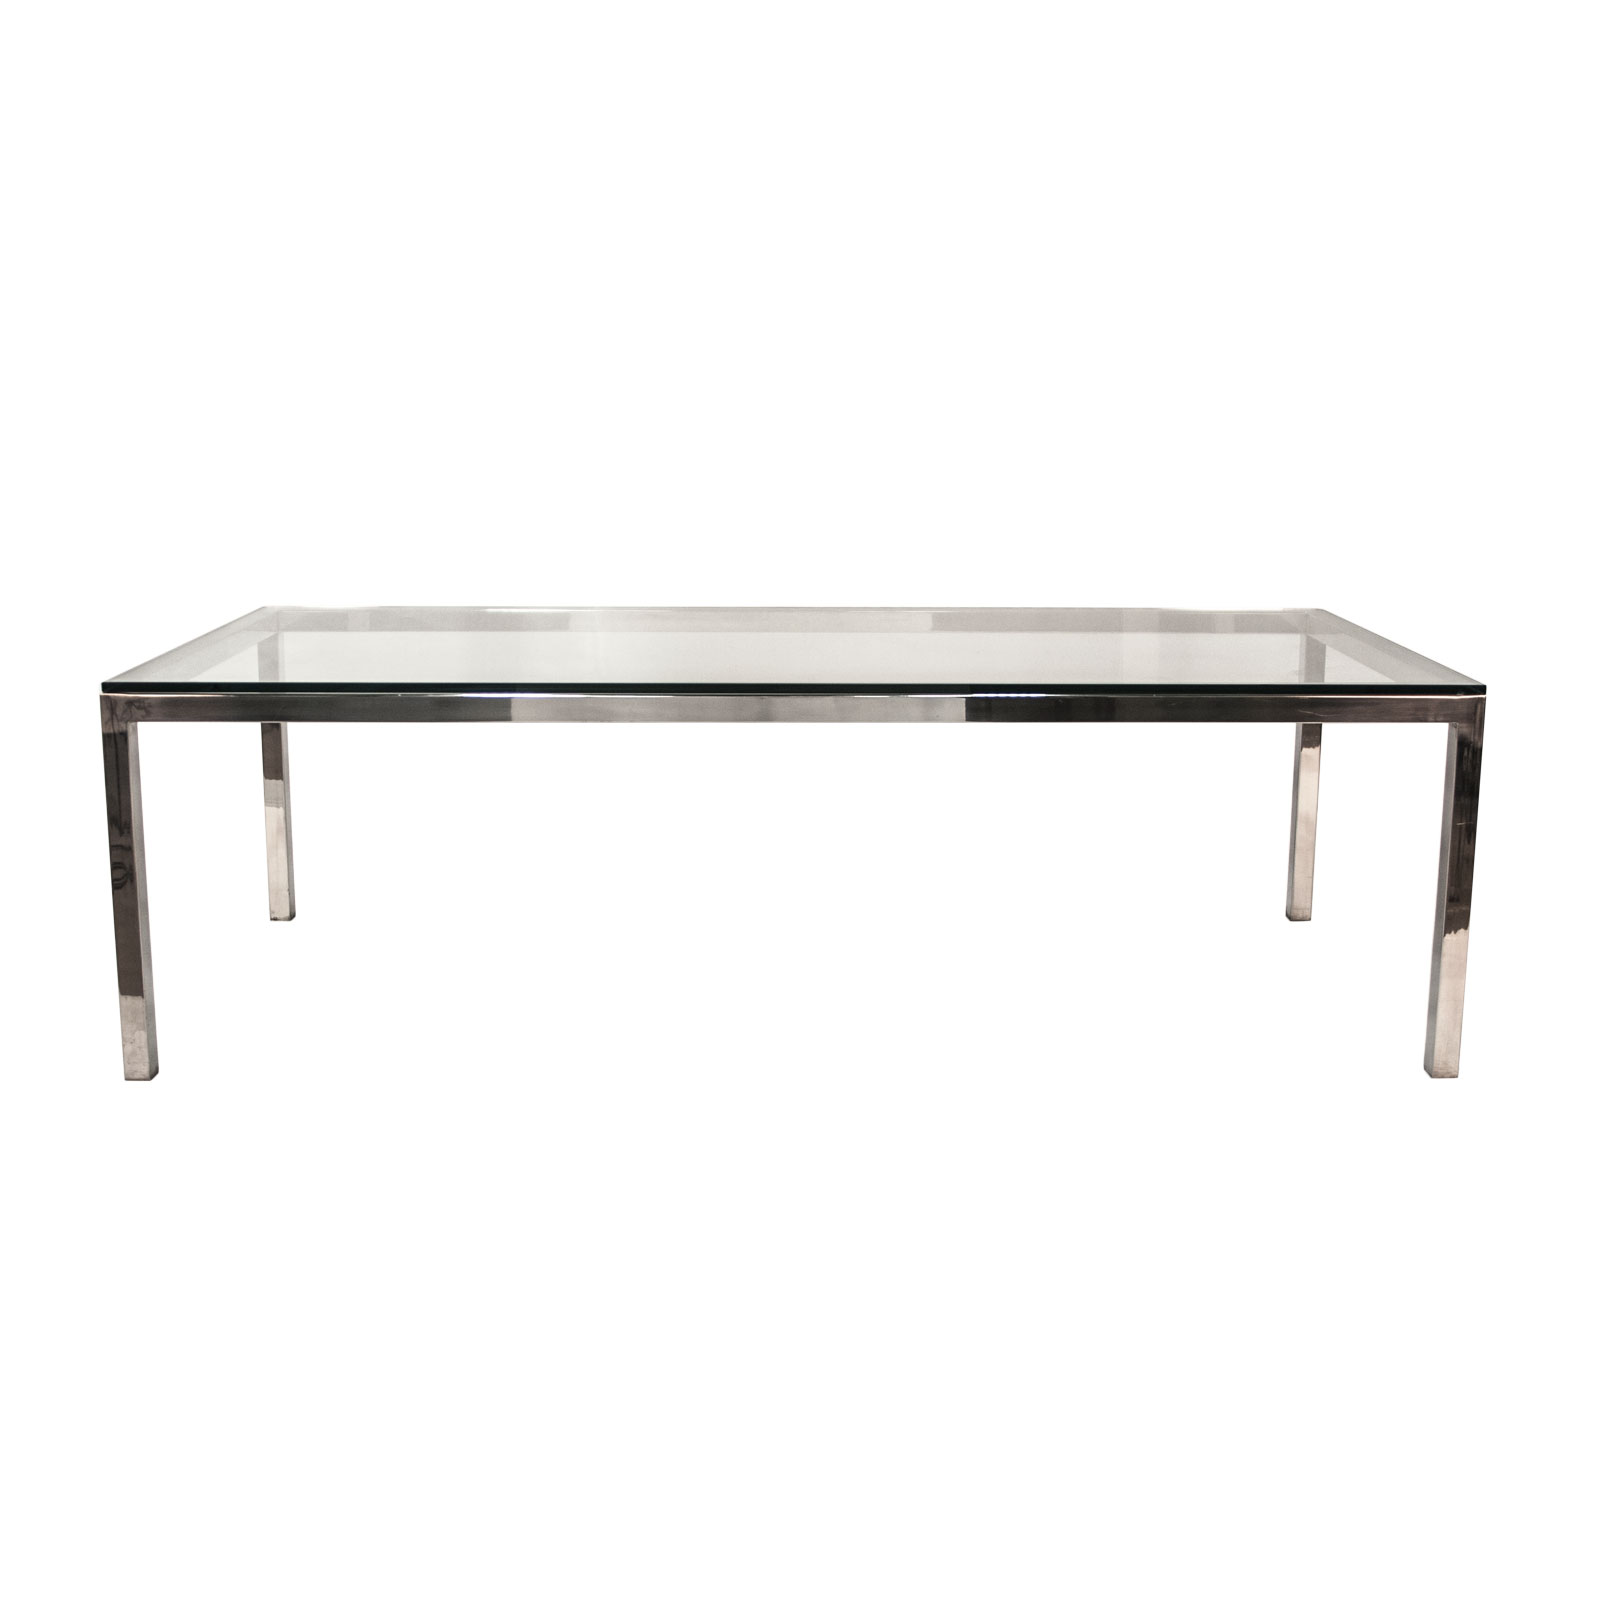 Dining table rentals event rental furniture delivery formdecor - Rent dining room table ...